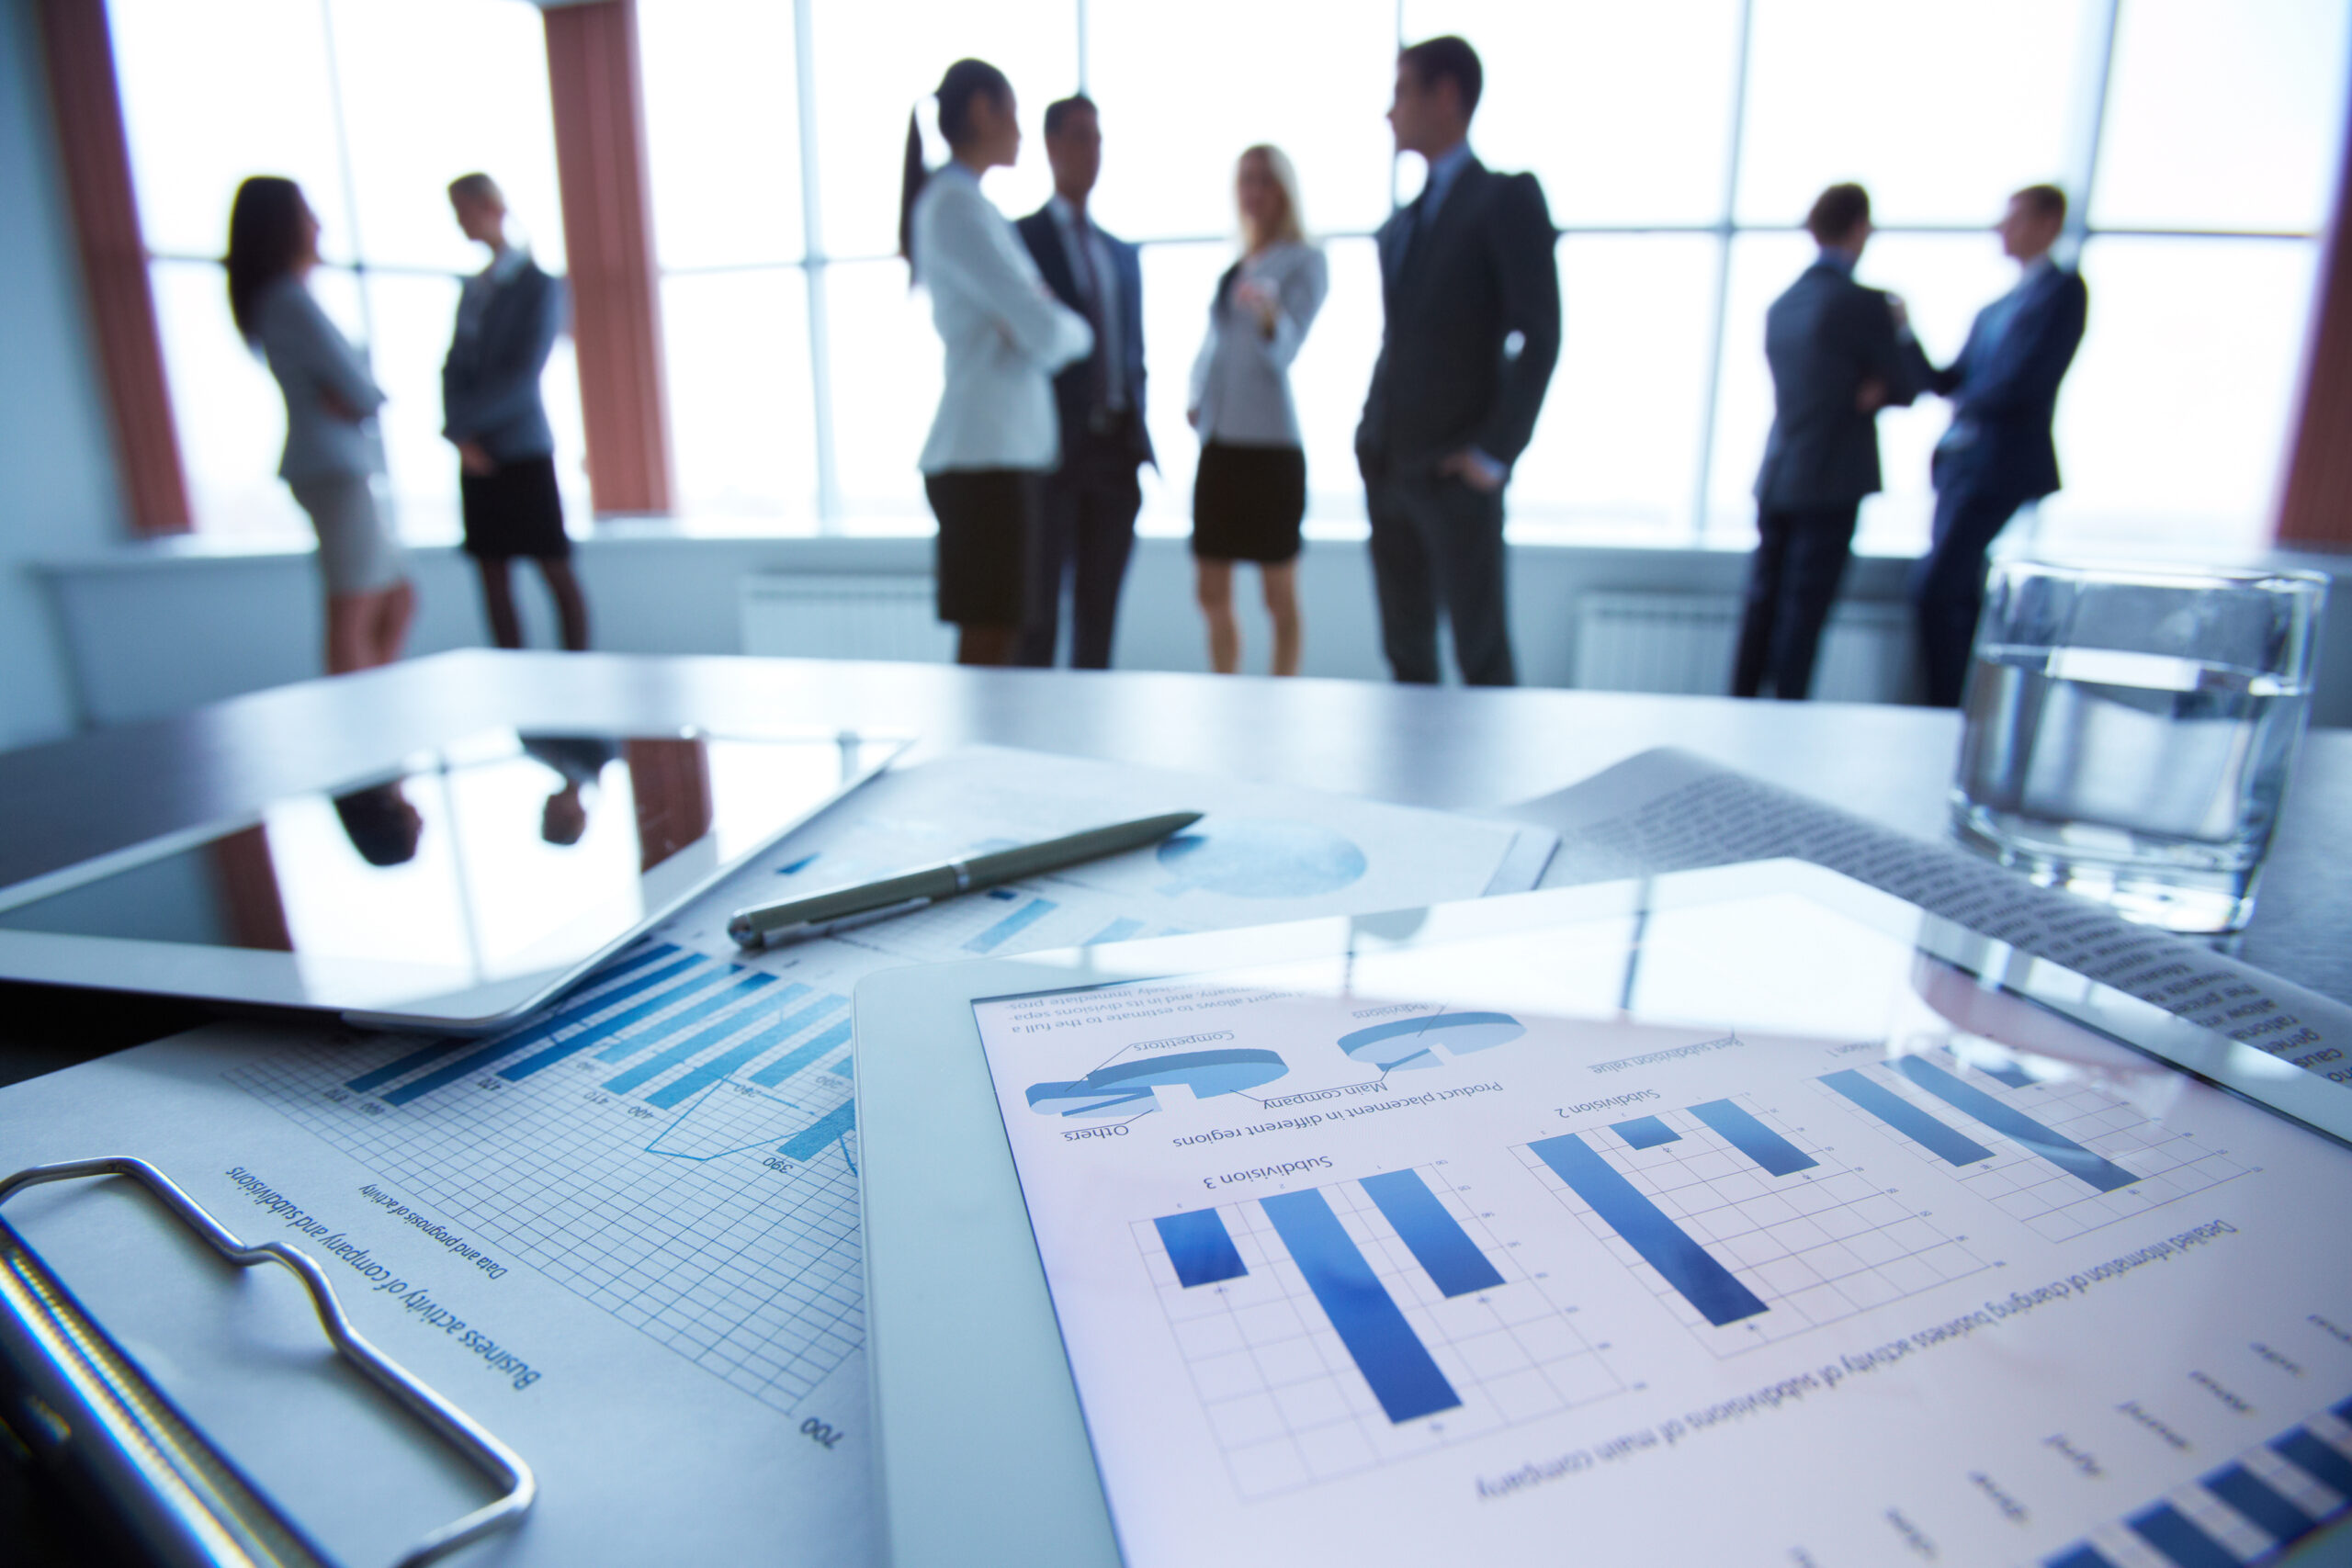 Cyprus Tax News: Extension to the deadline for payment of the 2021 annual company levy